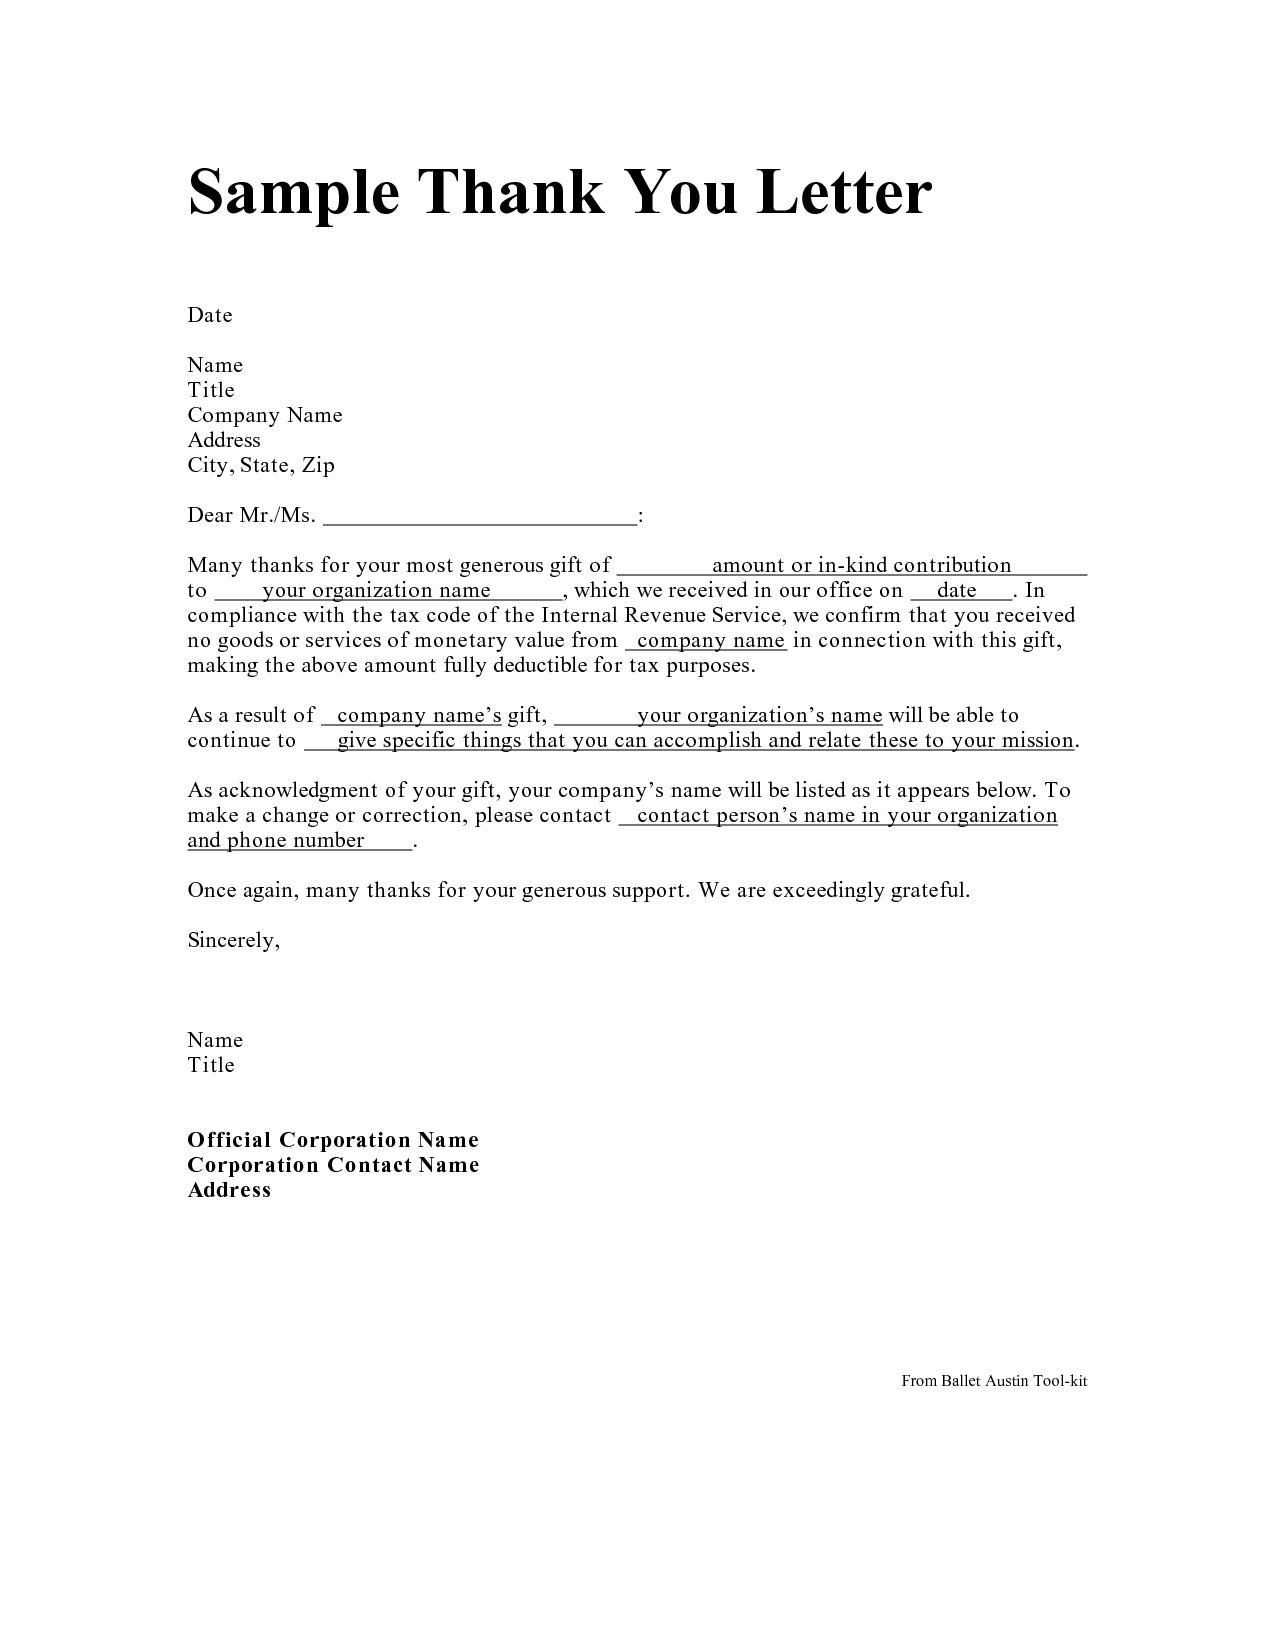 Startup Offer Letter Template - Personal Thank You Letter Personal Thank You Letter Samples